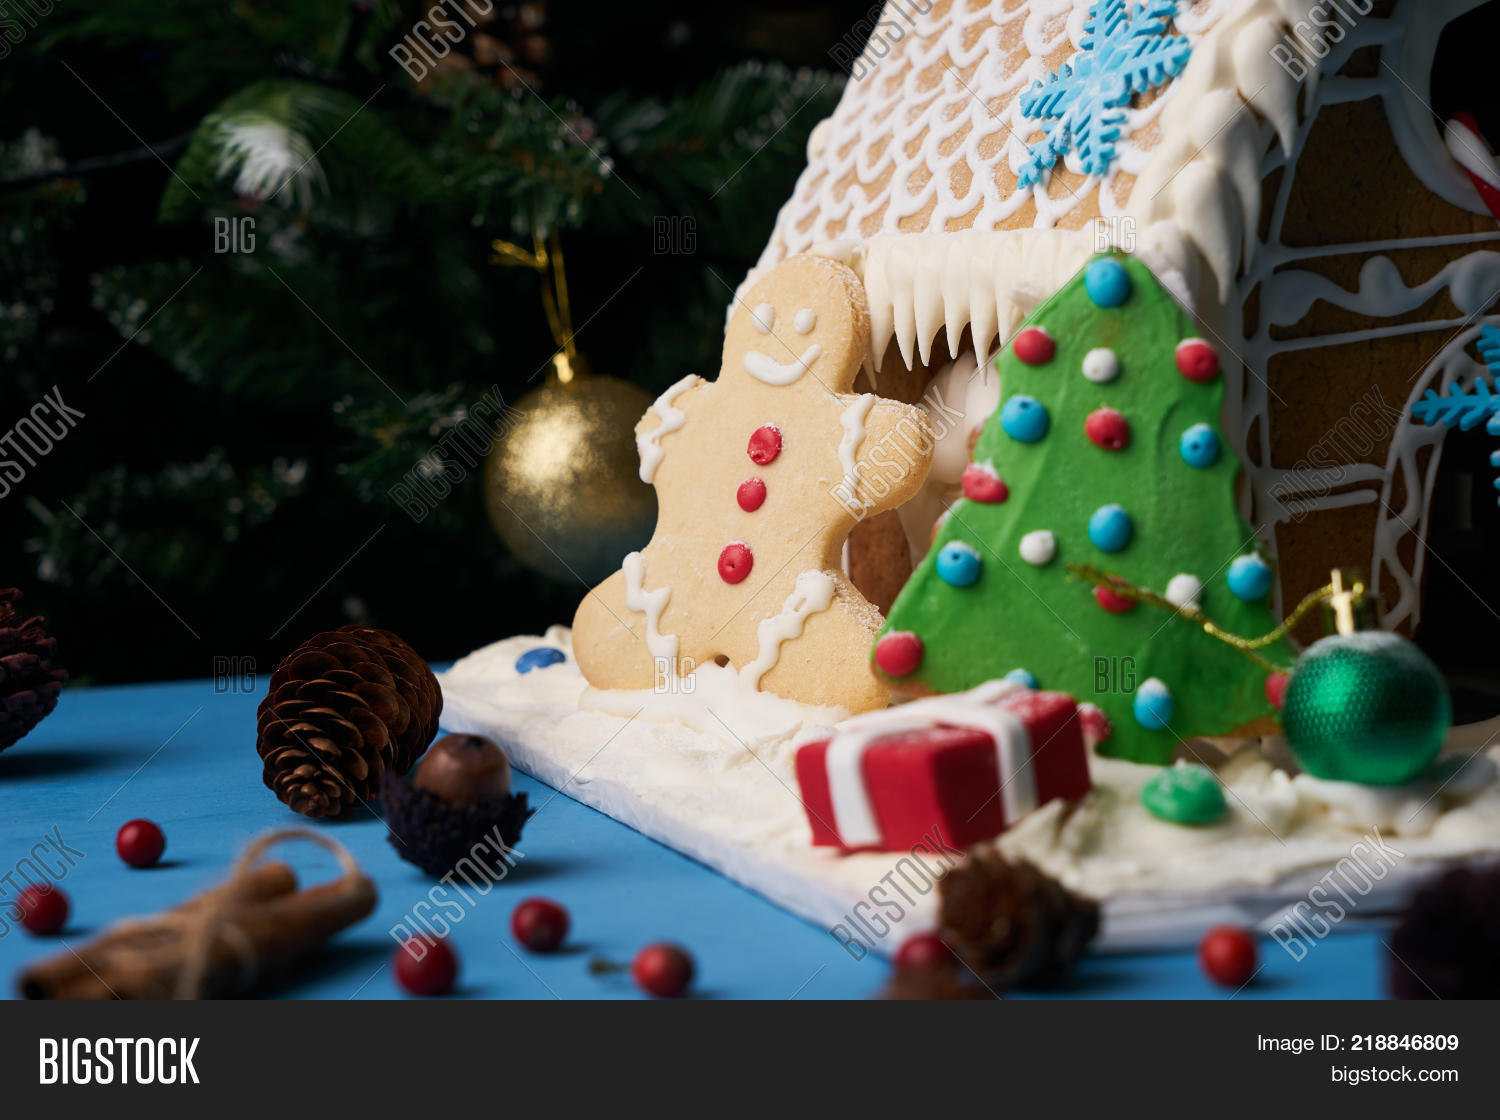 Gingerbread House Image Photo Free Trial Bigstock